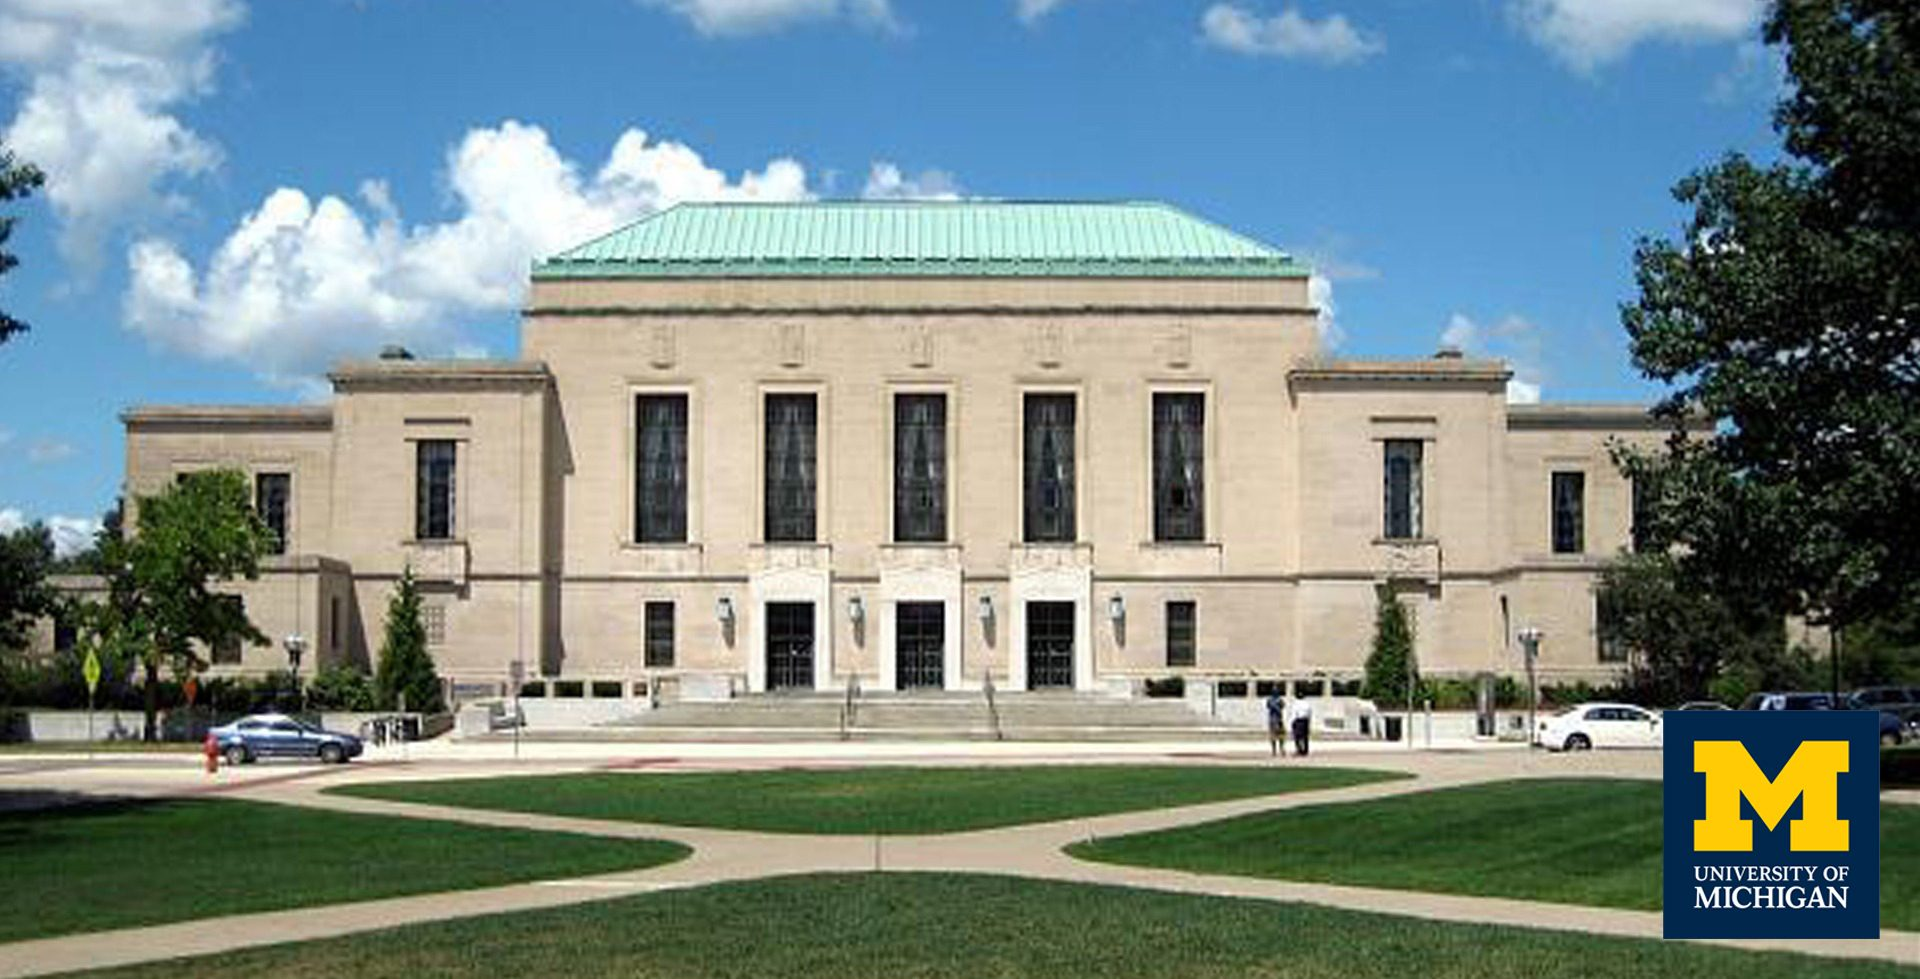 University of Michigan where income planning classes are offered.